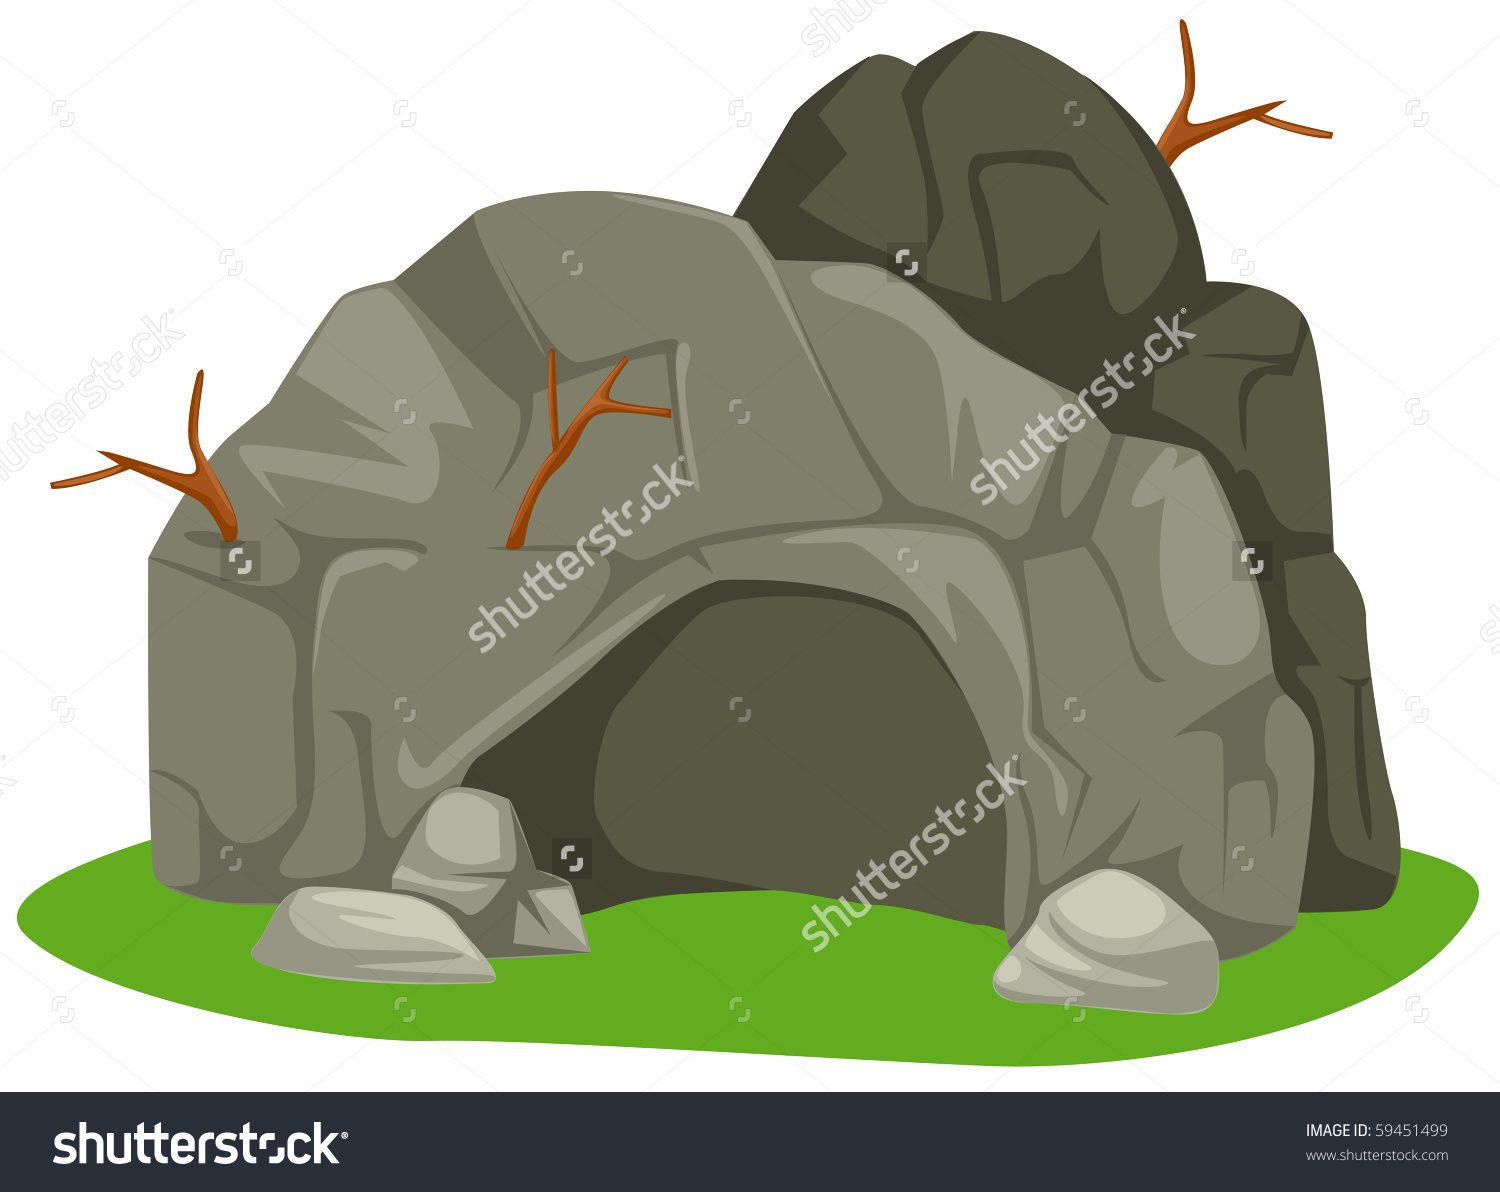 Cave clipart cartoon. Illustration of isolated on